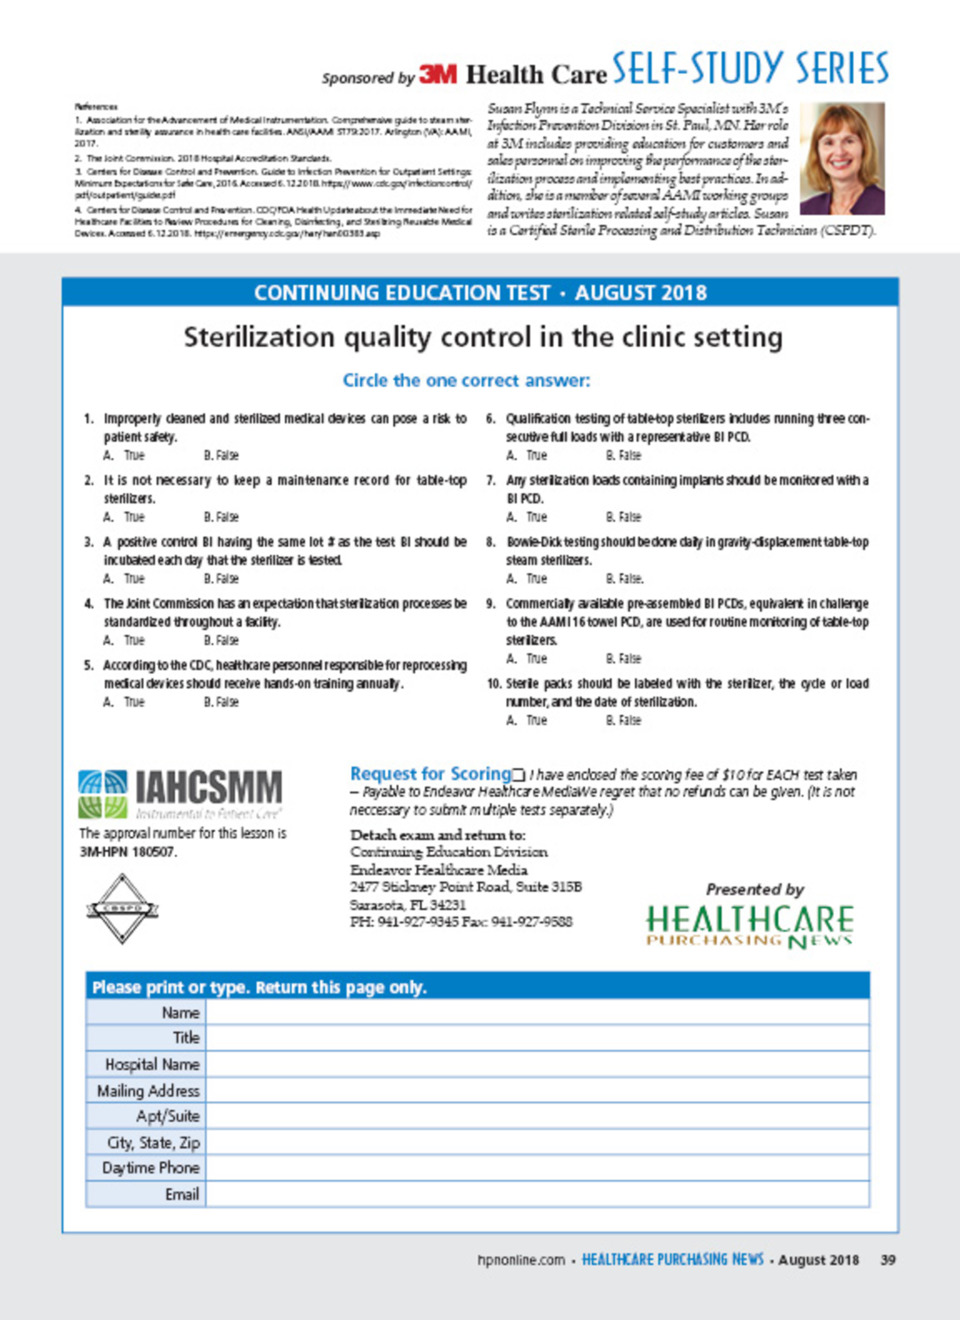 Sterilization quality control in the clinic setting